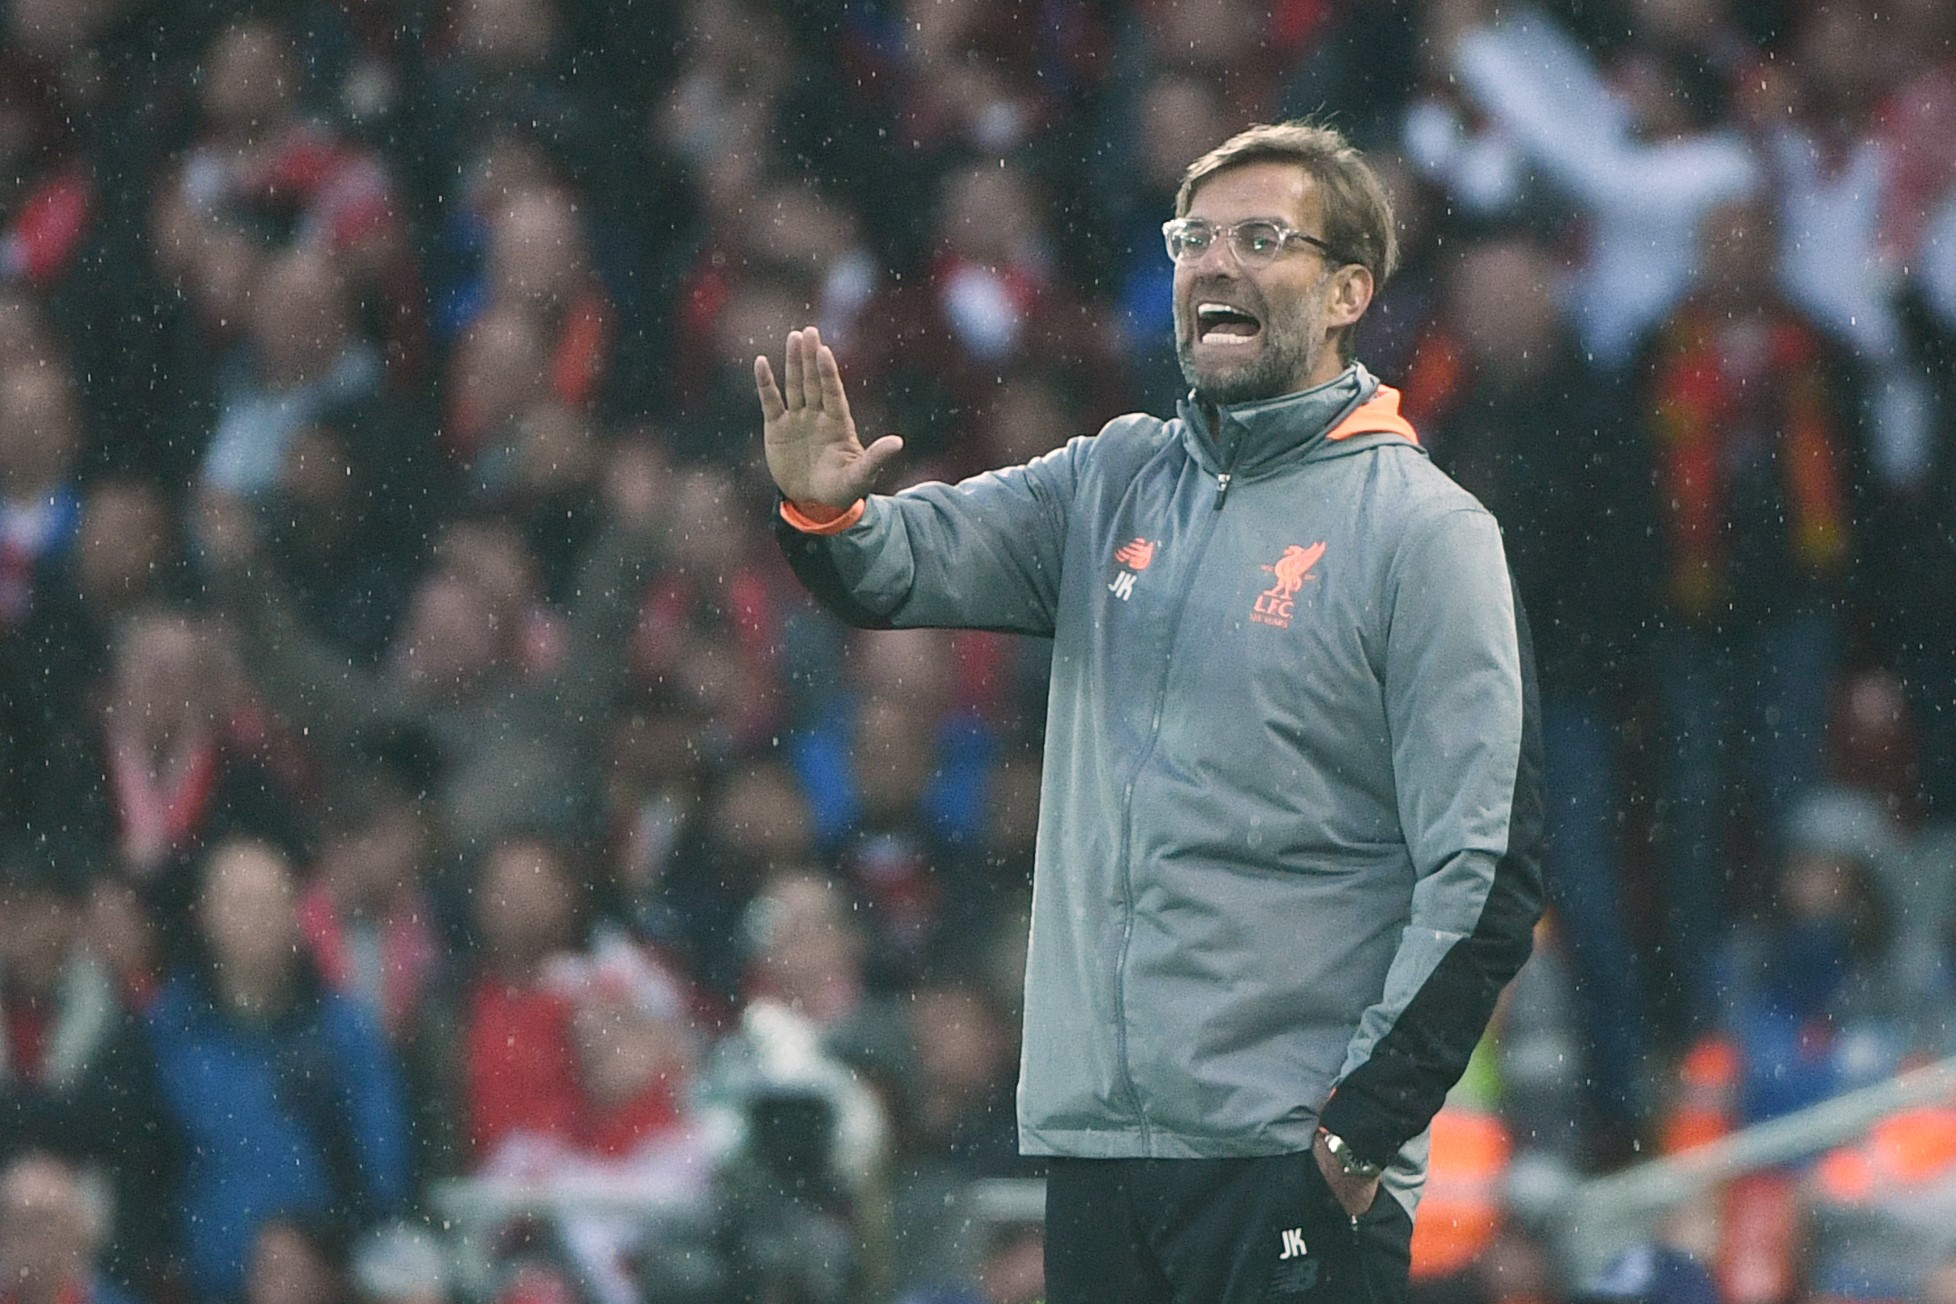 Liverpool's German manager Jurgen Klopp gestures during the UEFA Champions League first leg semi-final football match between Liverpool and Roma at Anfield stadium in Liverpool, north west England on April 24, 2018.